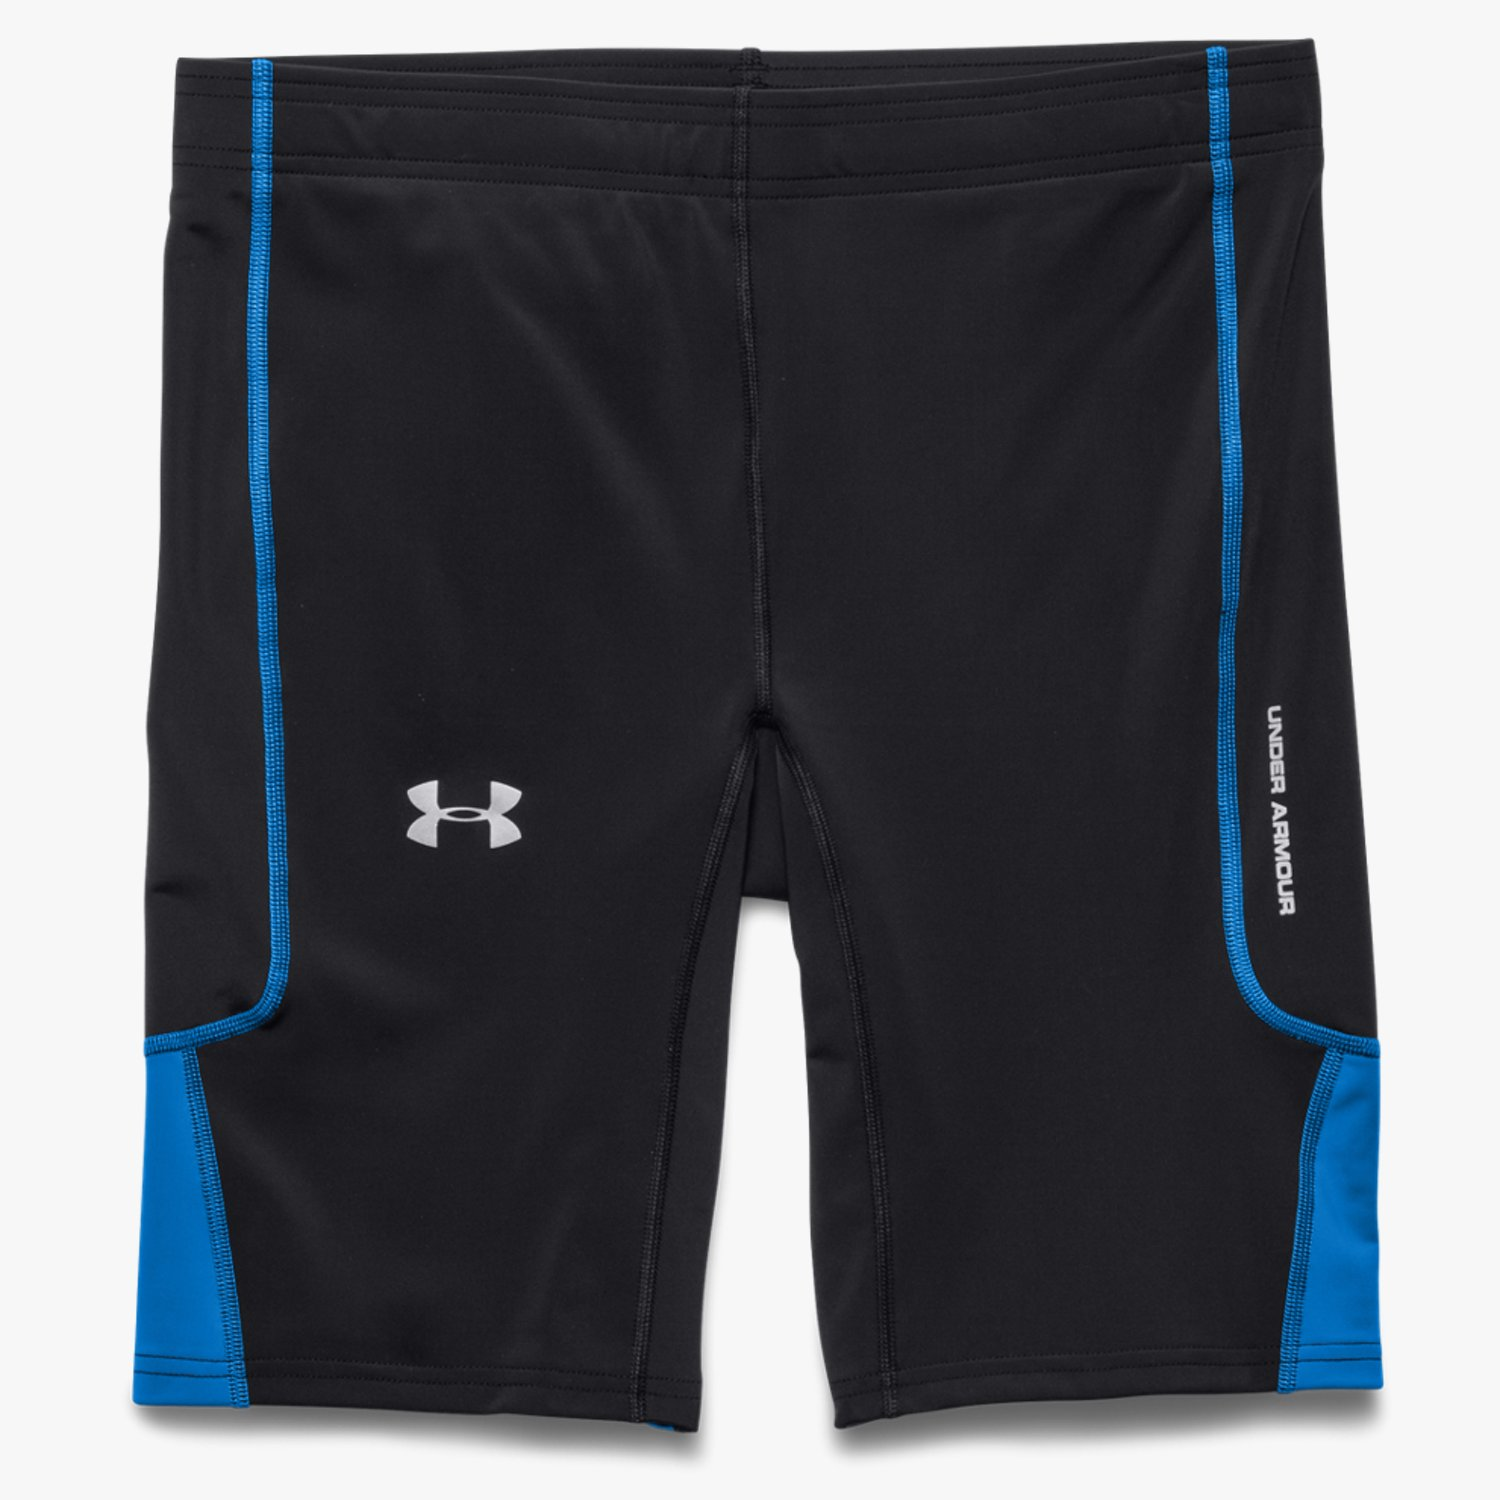 Under Armour UA Run Kompressions-Shorts Black/Blue Jet-30